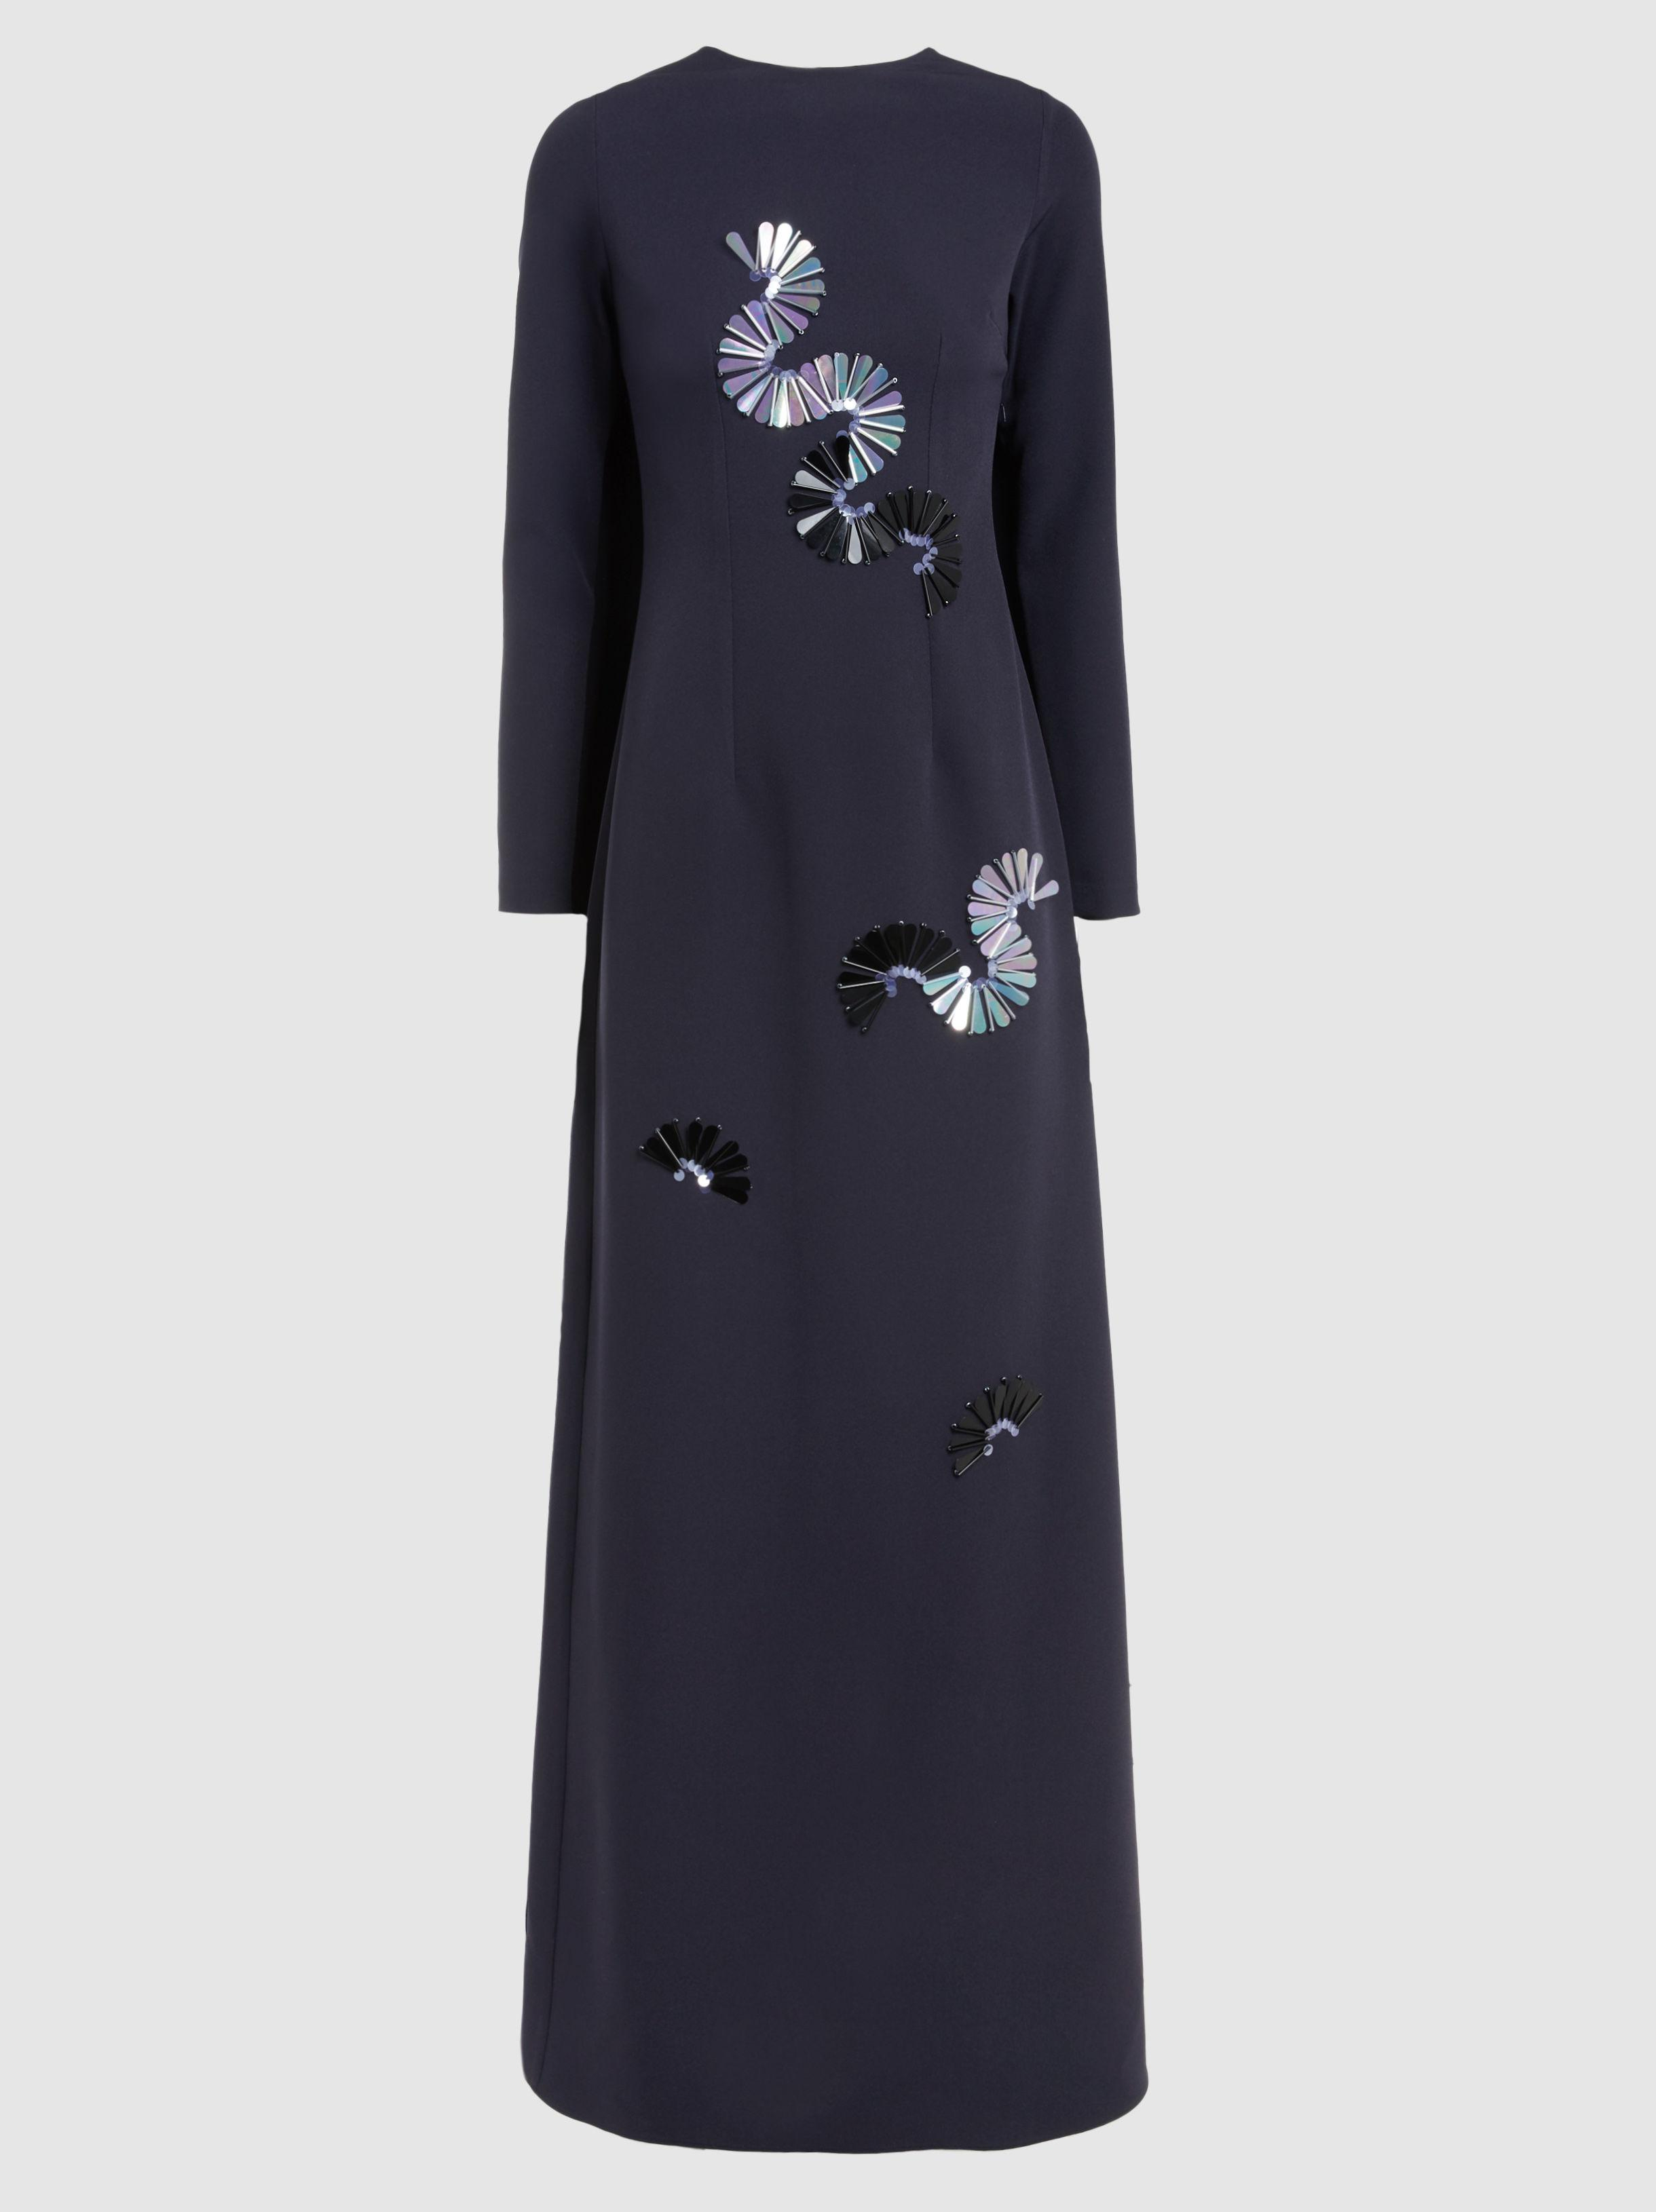 Great Deals Sale Online Huge Surprise Cheap Online Midnight Embellished Cape Gown SAFiYAA Shop Cheap Price Browse npM52E5wyY